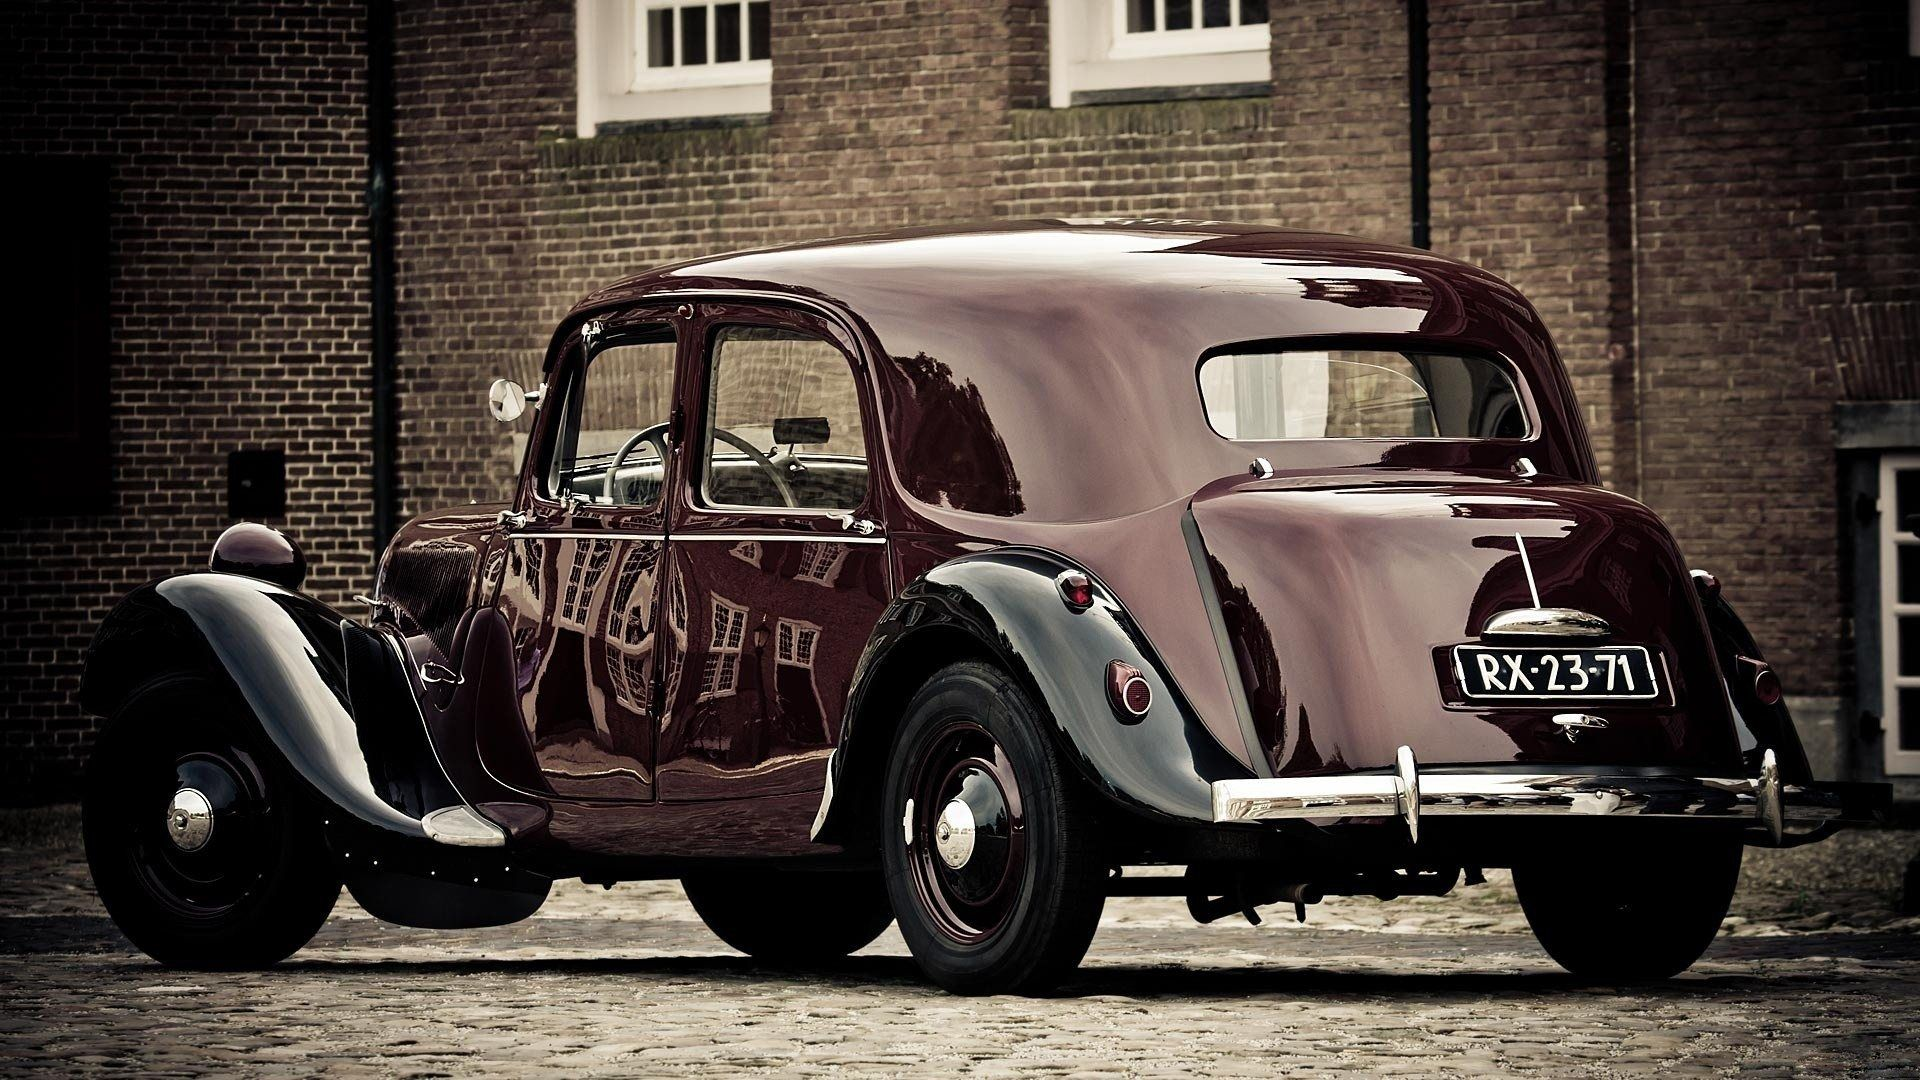 Classic Vintage Wallpaper Httpwhatstrendingonlinecomclassic - Old car photos